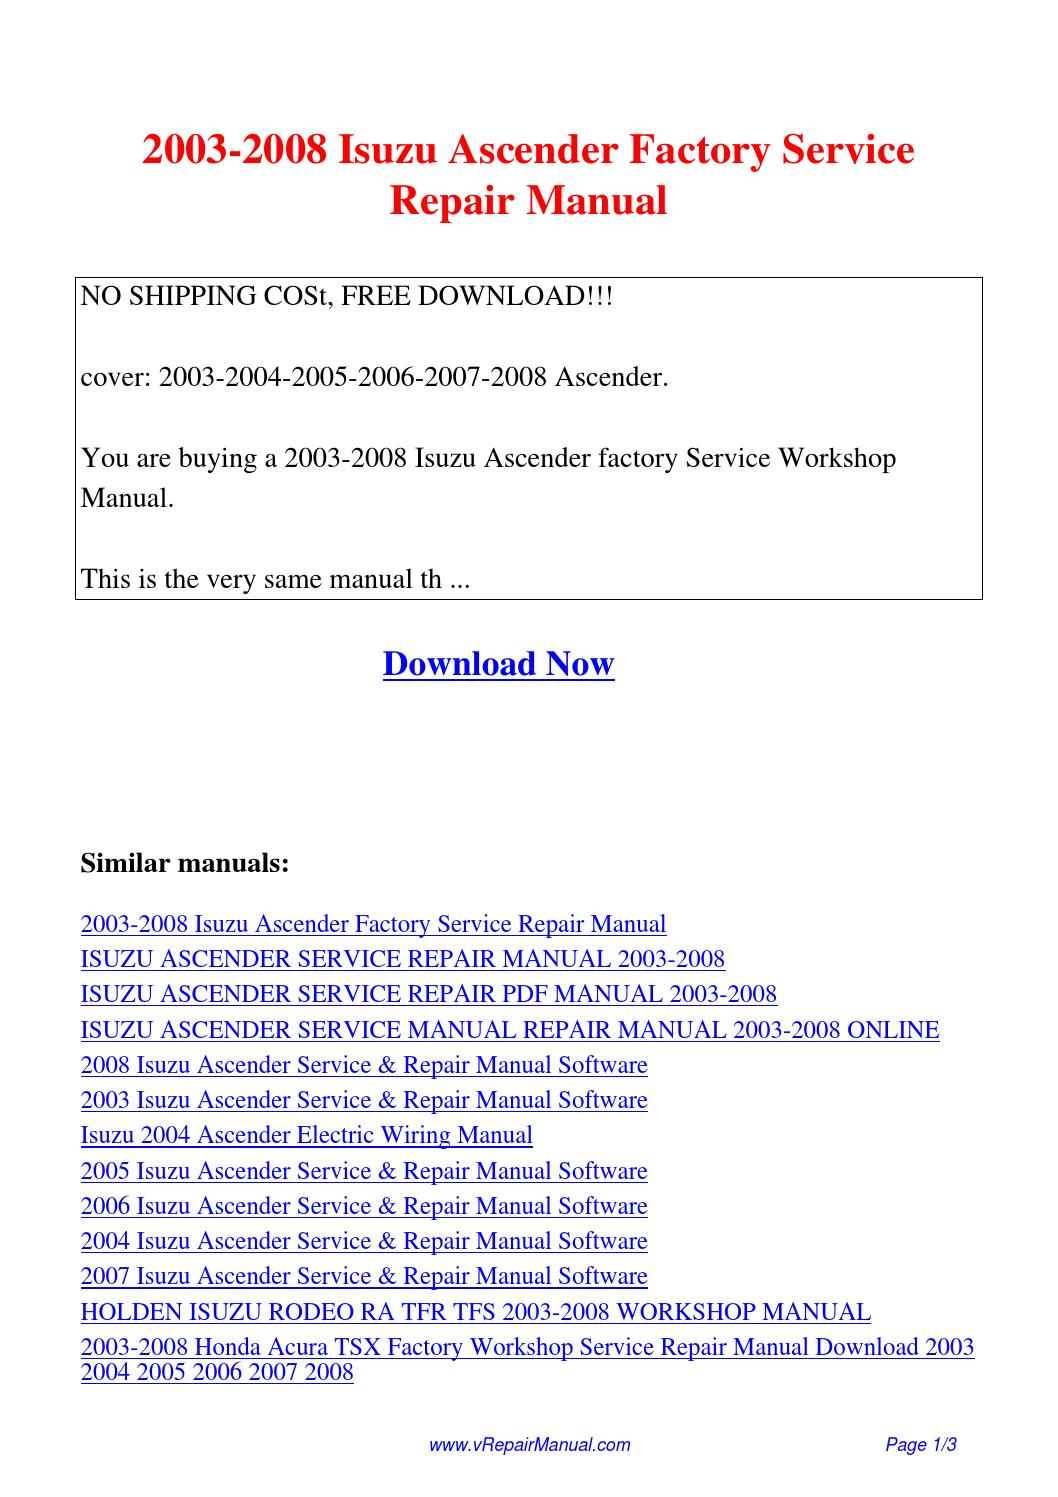 2003-2008 Isuzu Ascender Factory Service Repair Manual.pdf by David Zhang -  issuu